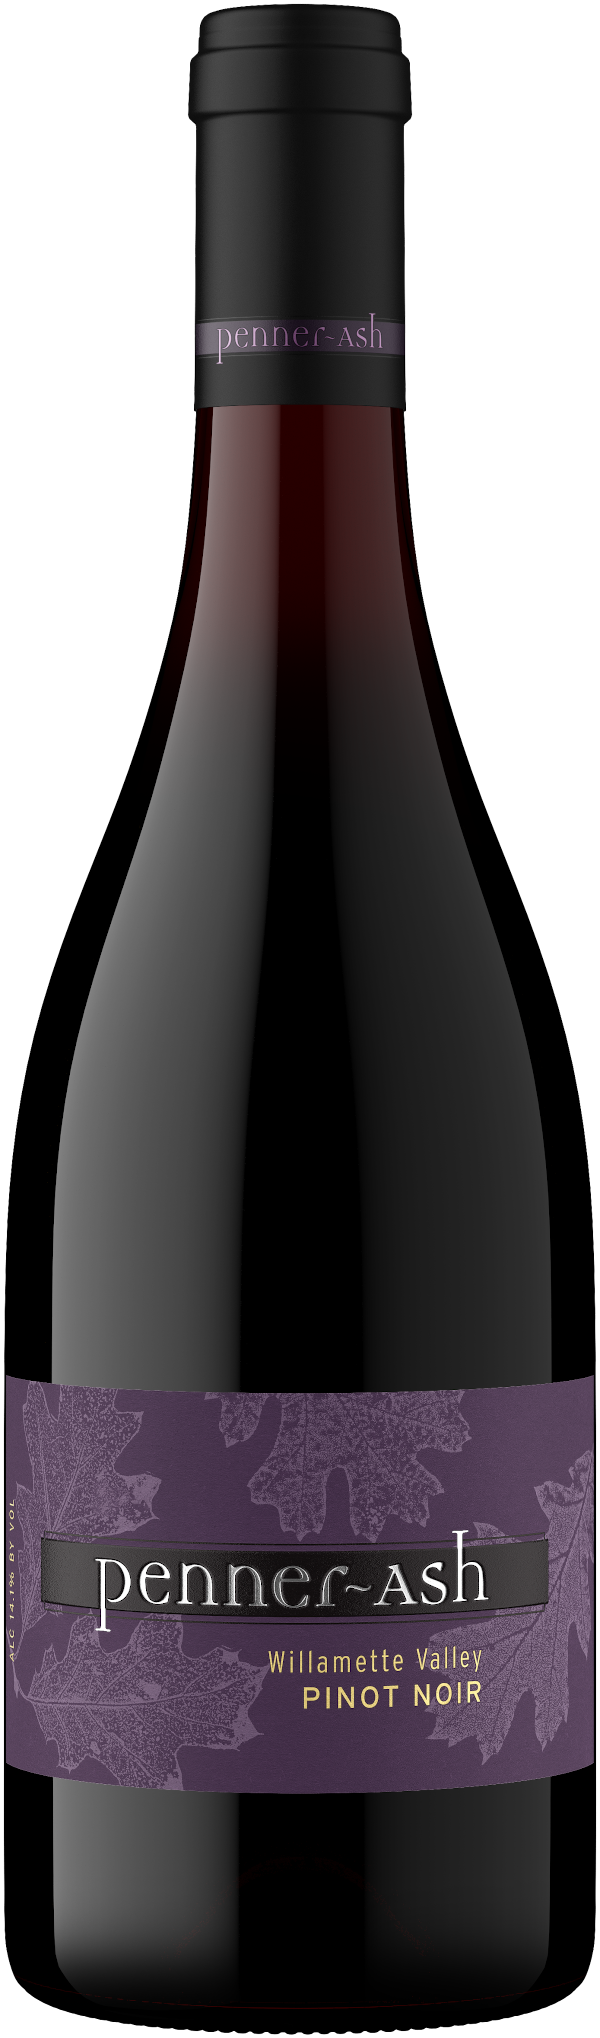 PennerAsh-PinotNoir-WillametteValley-NV